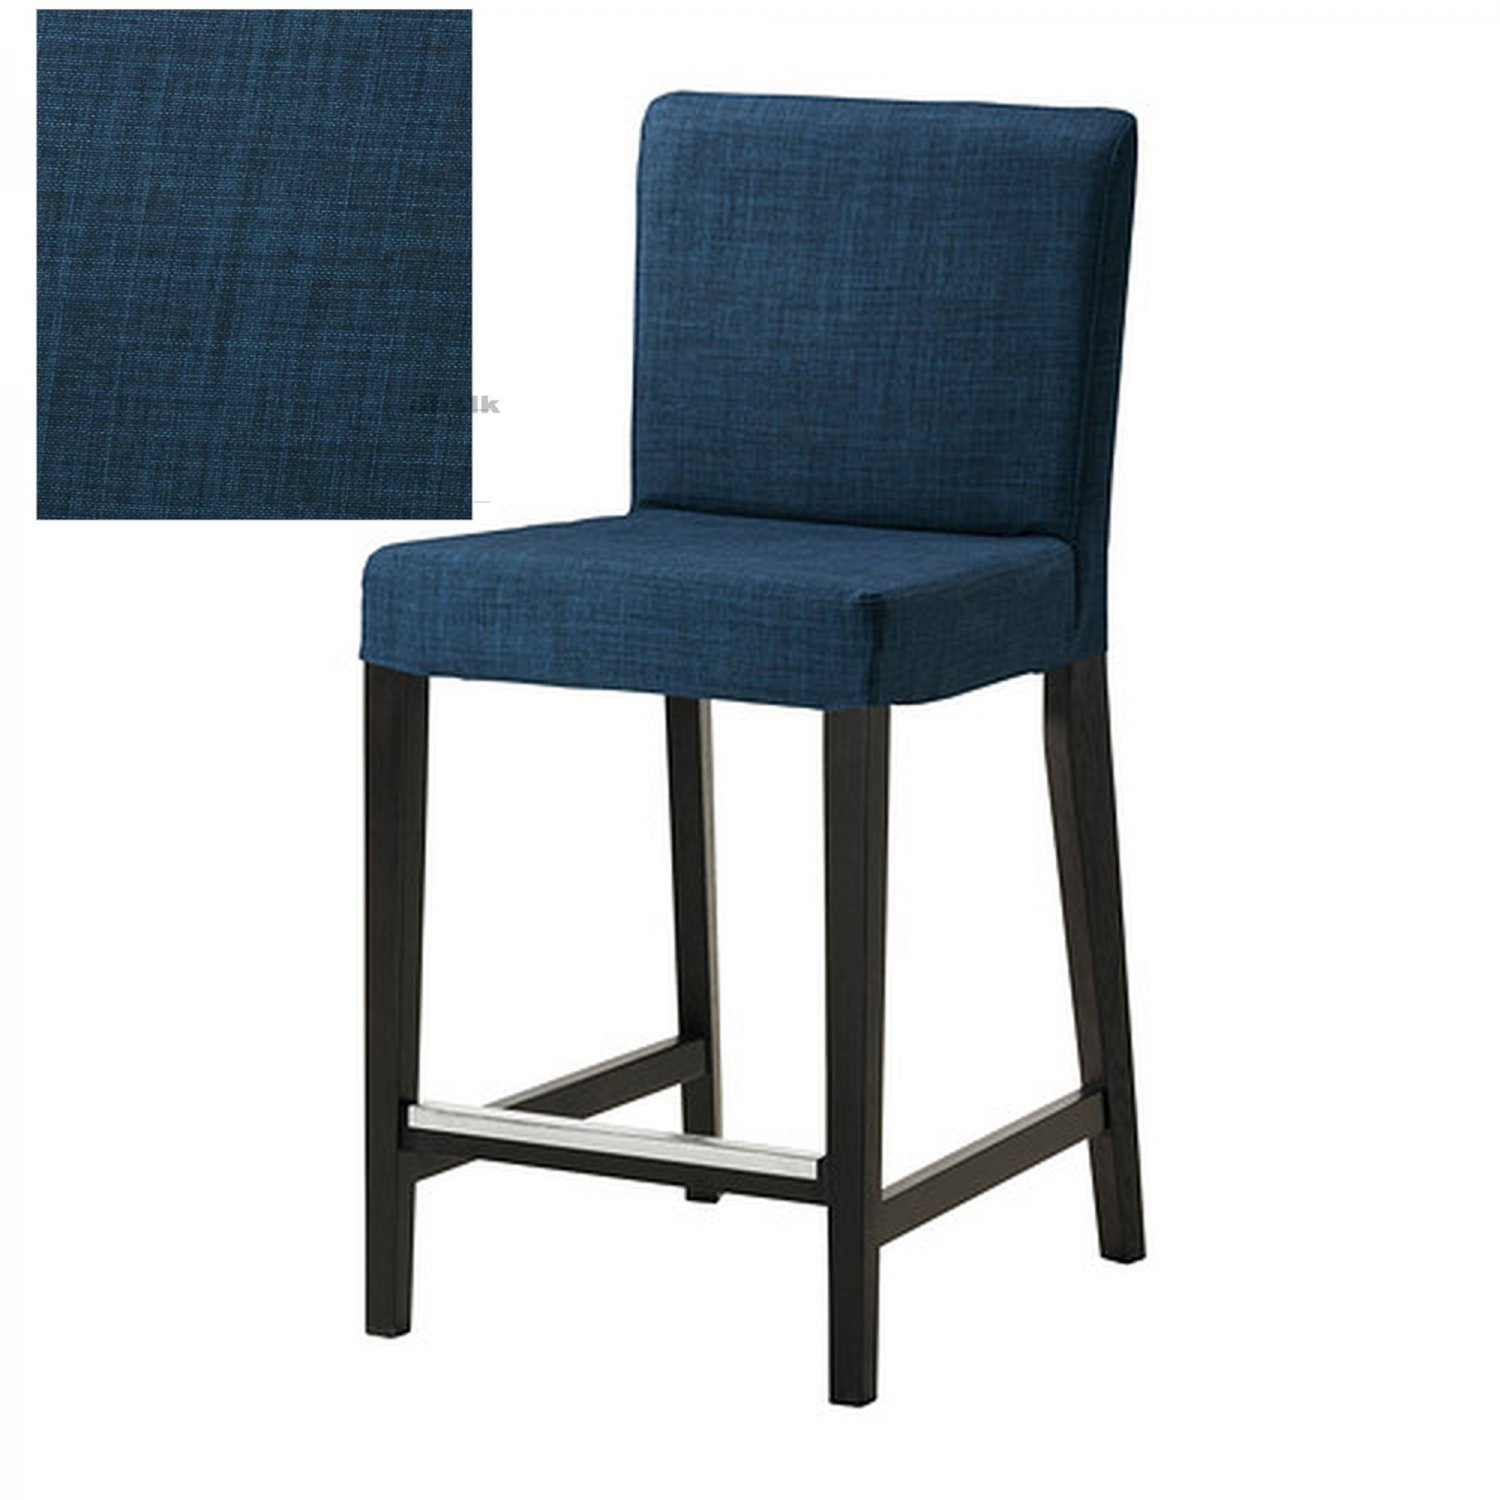 ikea henriksdal skiftebo bar stool slipcover barstool cover 19 48cm blue. Black Bedroom Furniture Sets. Home Design Ideas